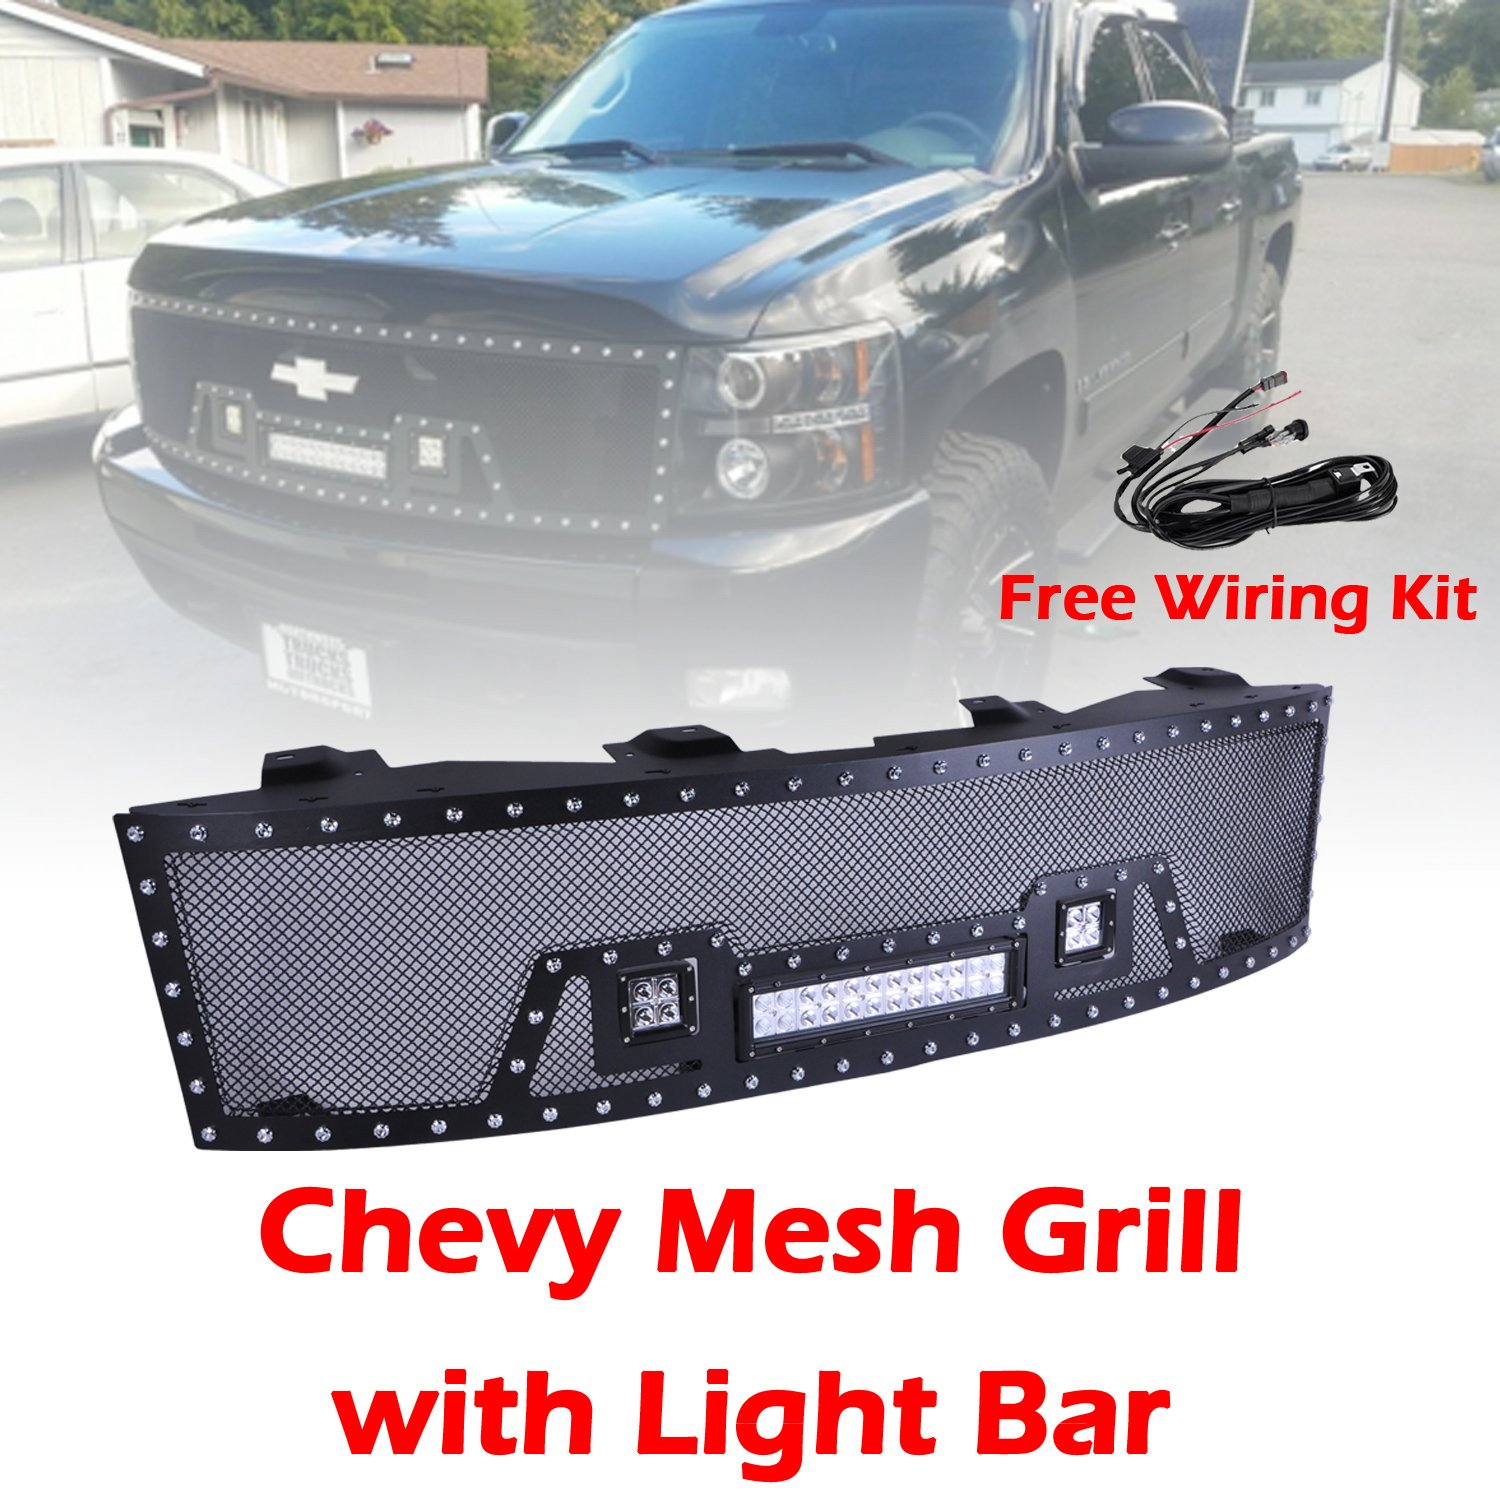 Ohmu Chevrolet Chevy Silverado Front Mesh Grill Grille Wiring Lights Nz For 2007 2013 1500 Pick Up Truck With 72w Led Cree Work Light Bar 16w Free